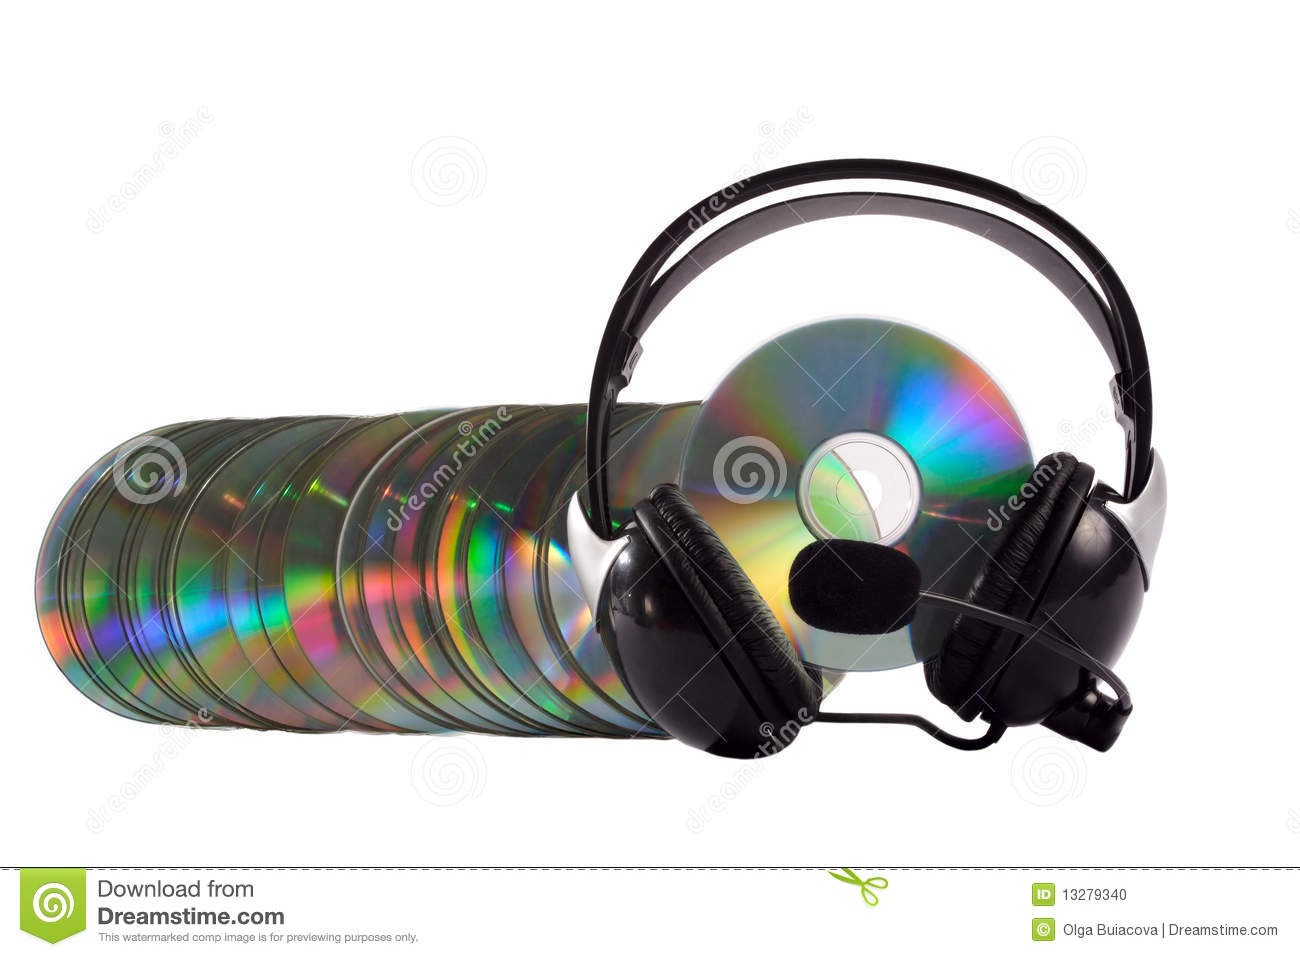 Stock images cd collection graphic black and white download Headphone And Cd Collection Stock Photo - Image: 13279340 graphic black and white download